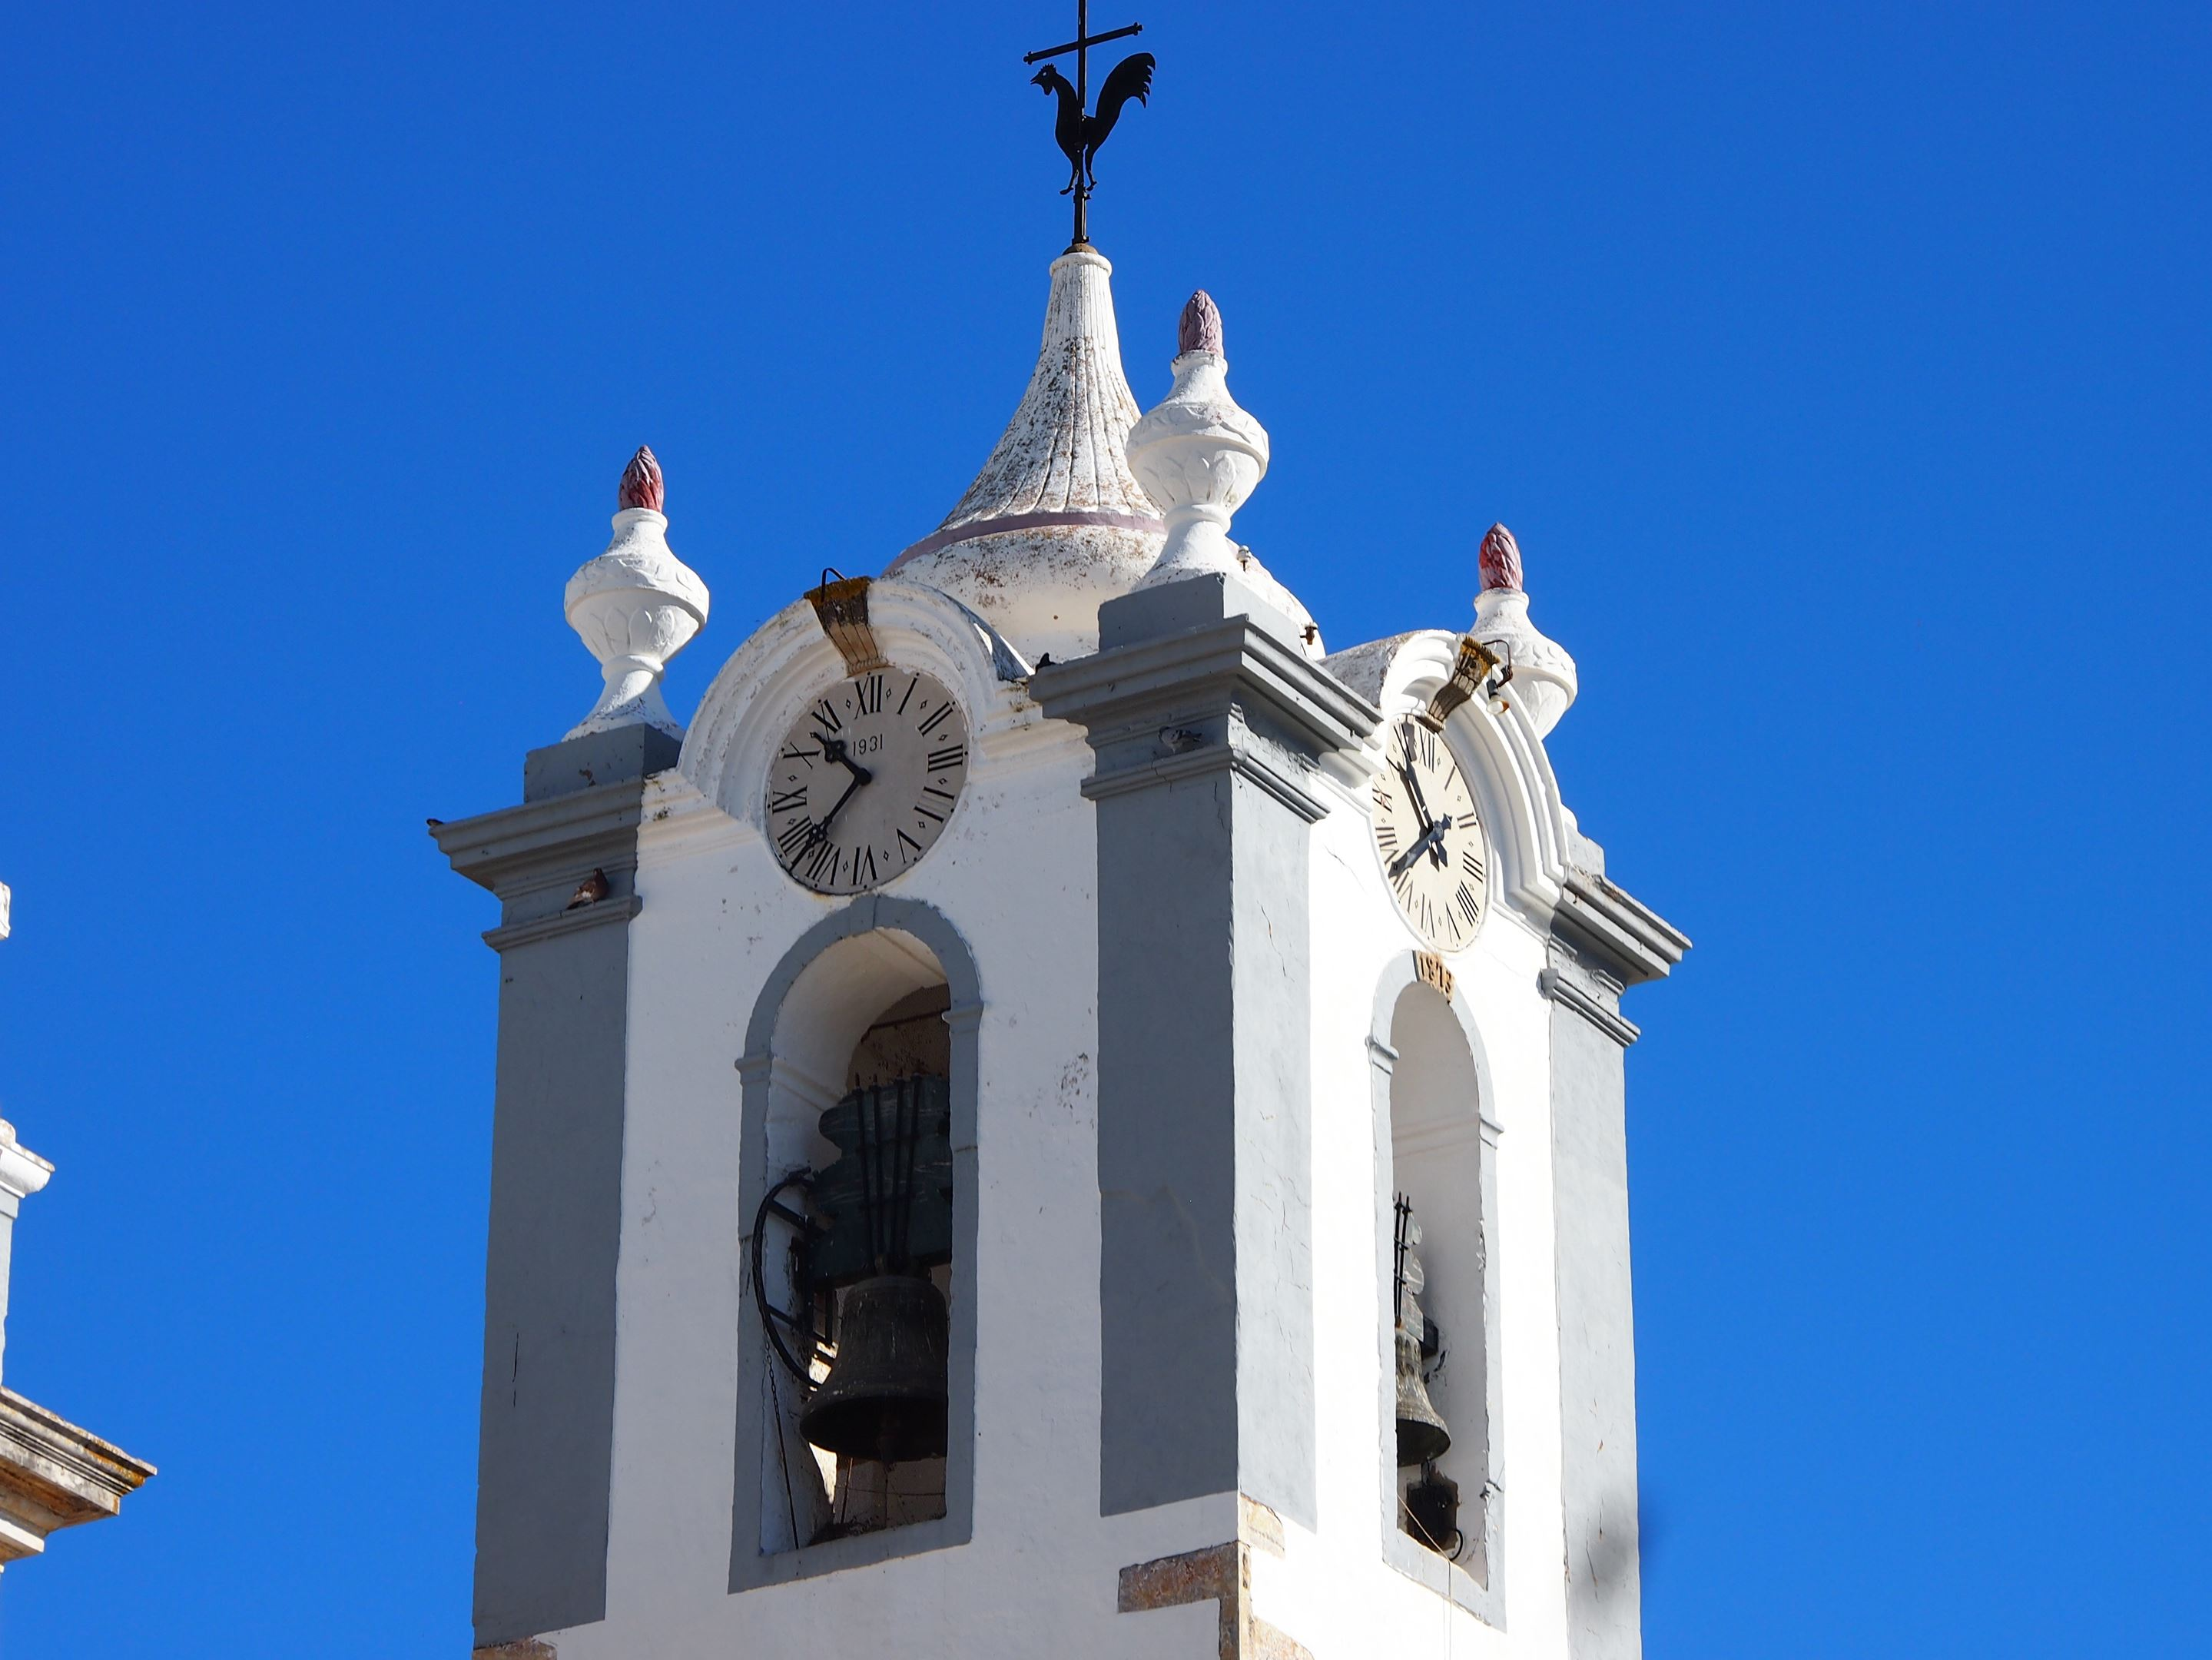 Estoi church - Igreja Matriz de Estoi clocktower, Algarve